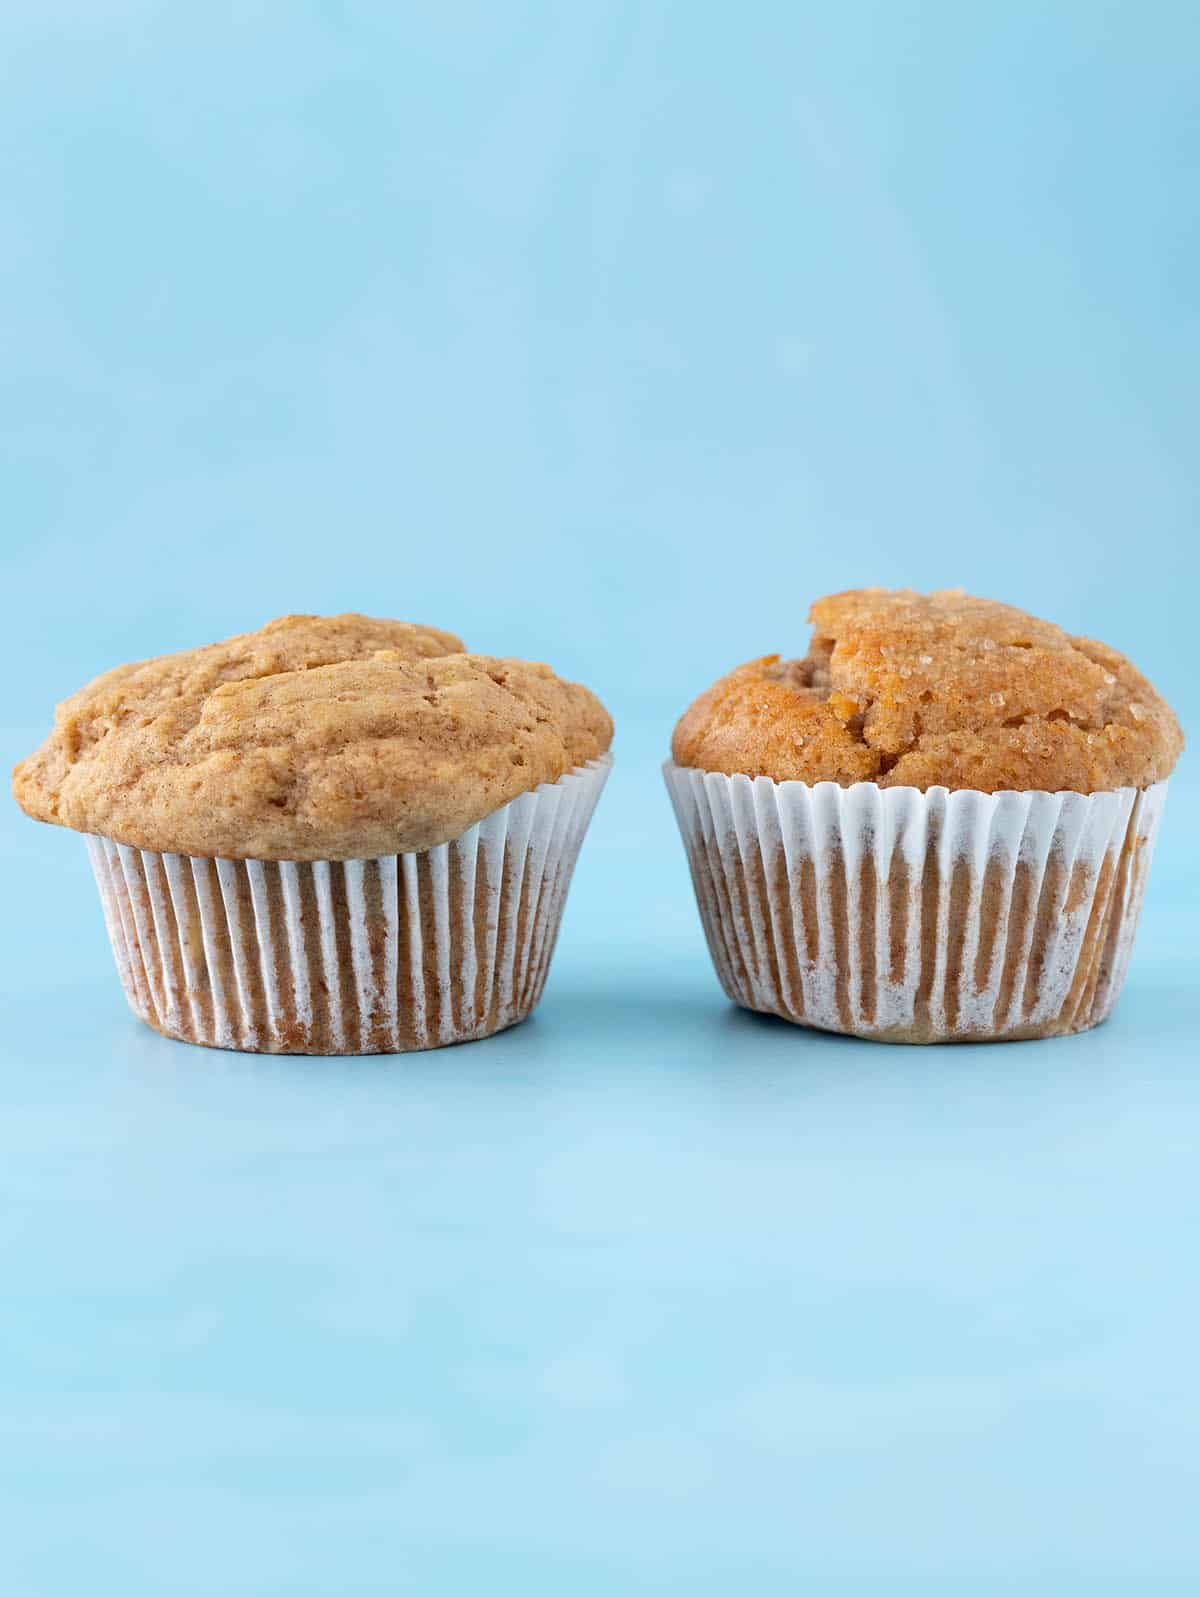 A side by side comparison of two banana muffins baked at different temperatures.